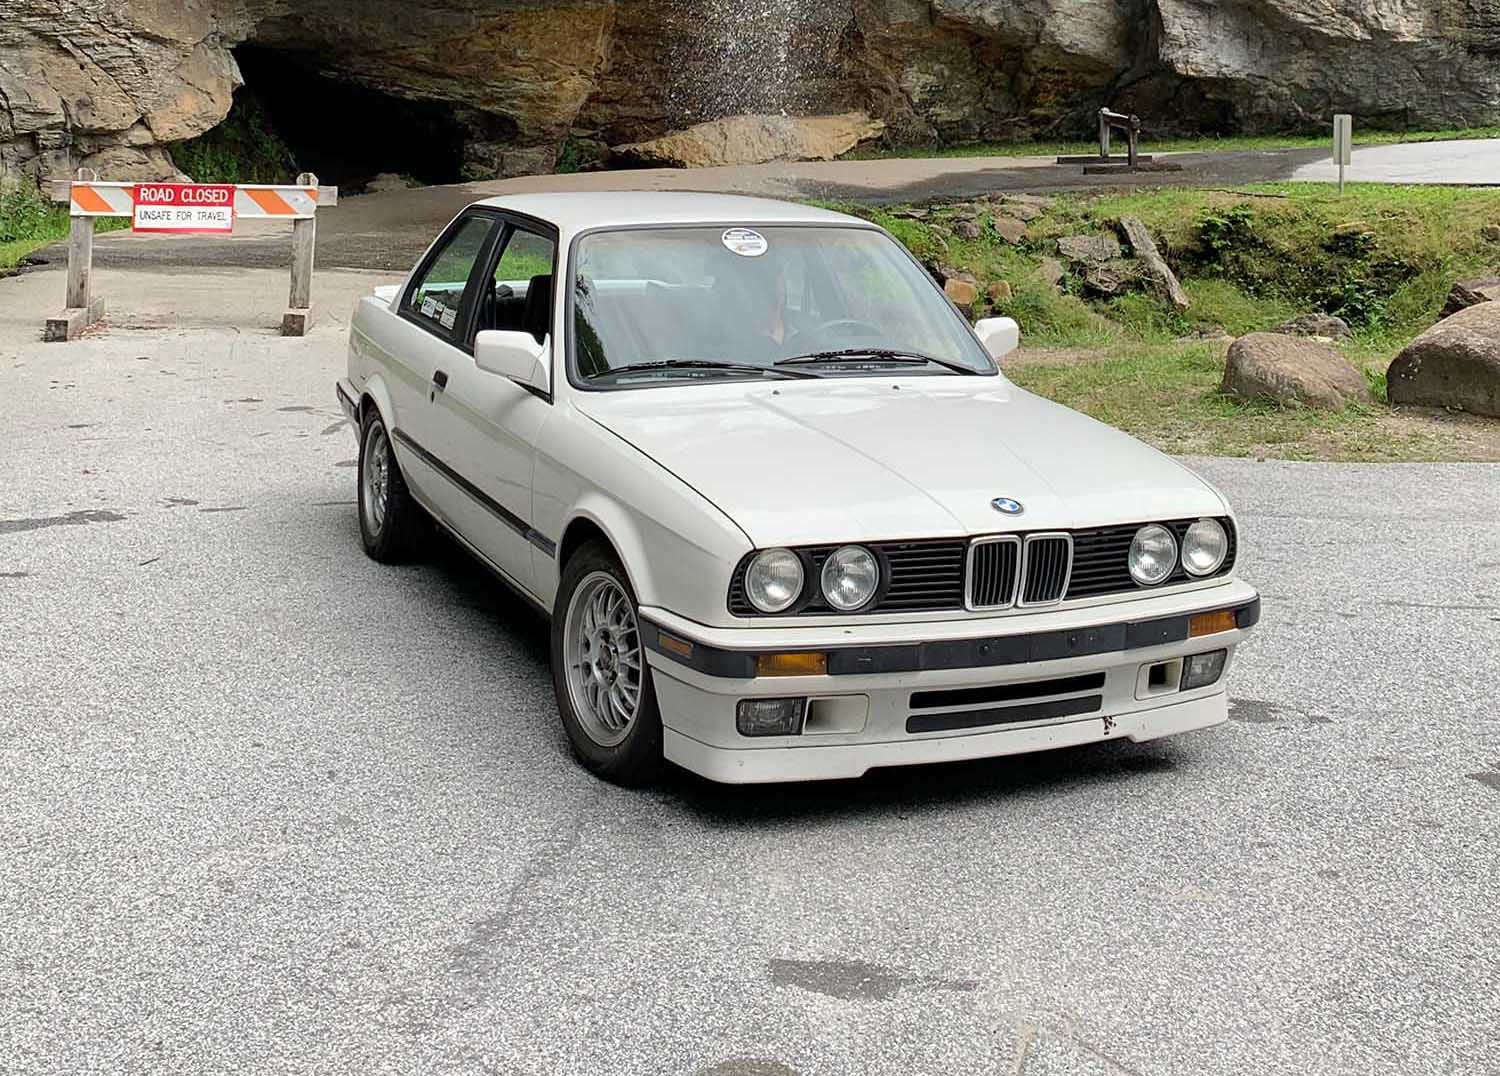 Project Bmw 318is Replacing The Steering Rack Bmw 318is Project Car Updates Grassroots Motorsports